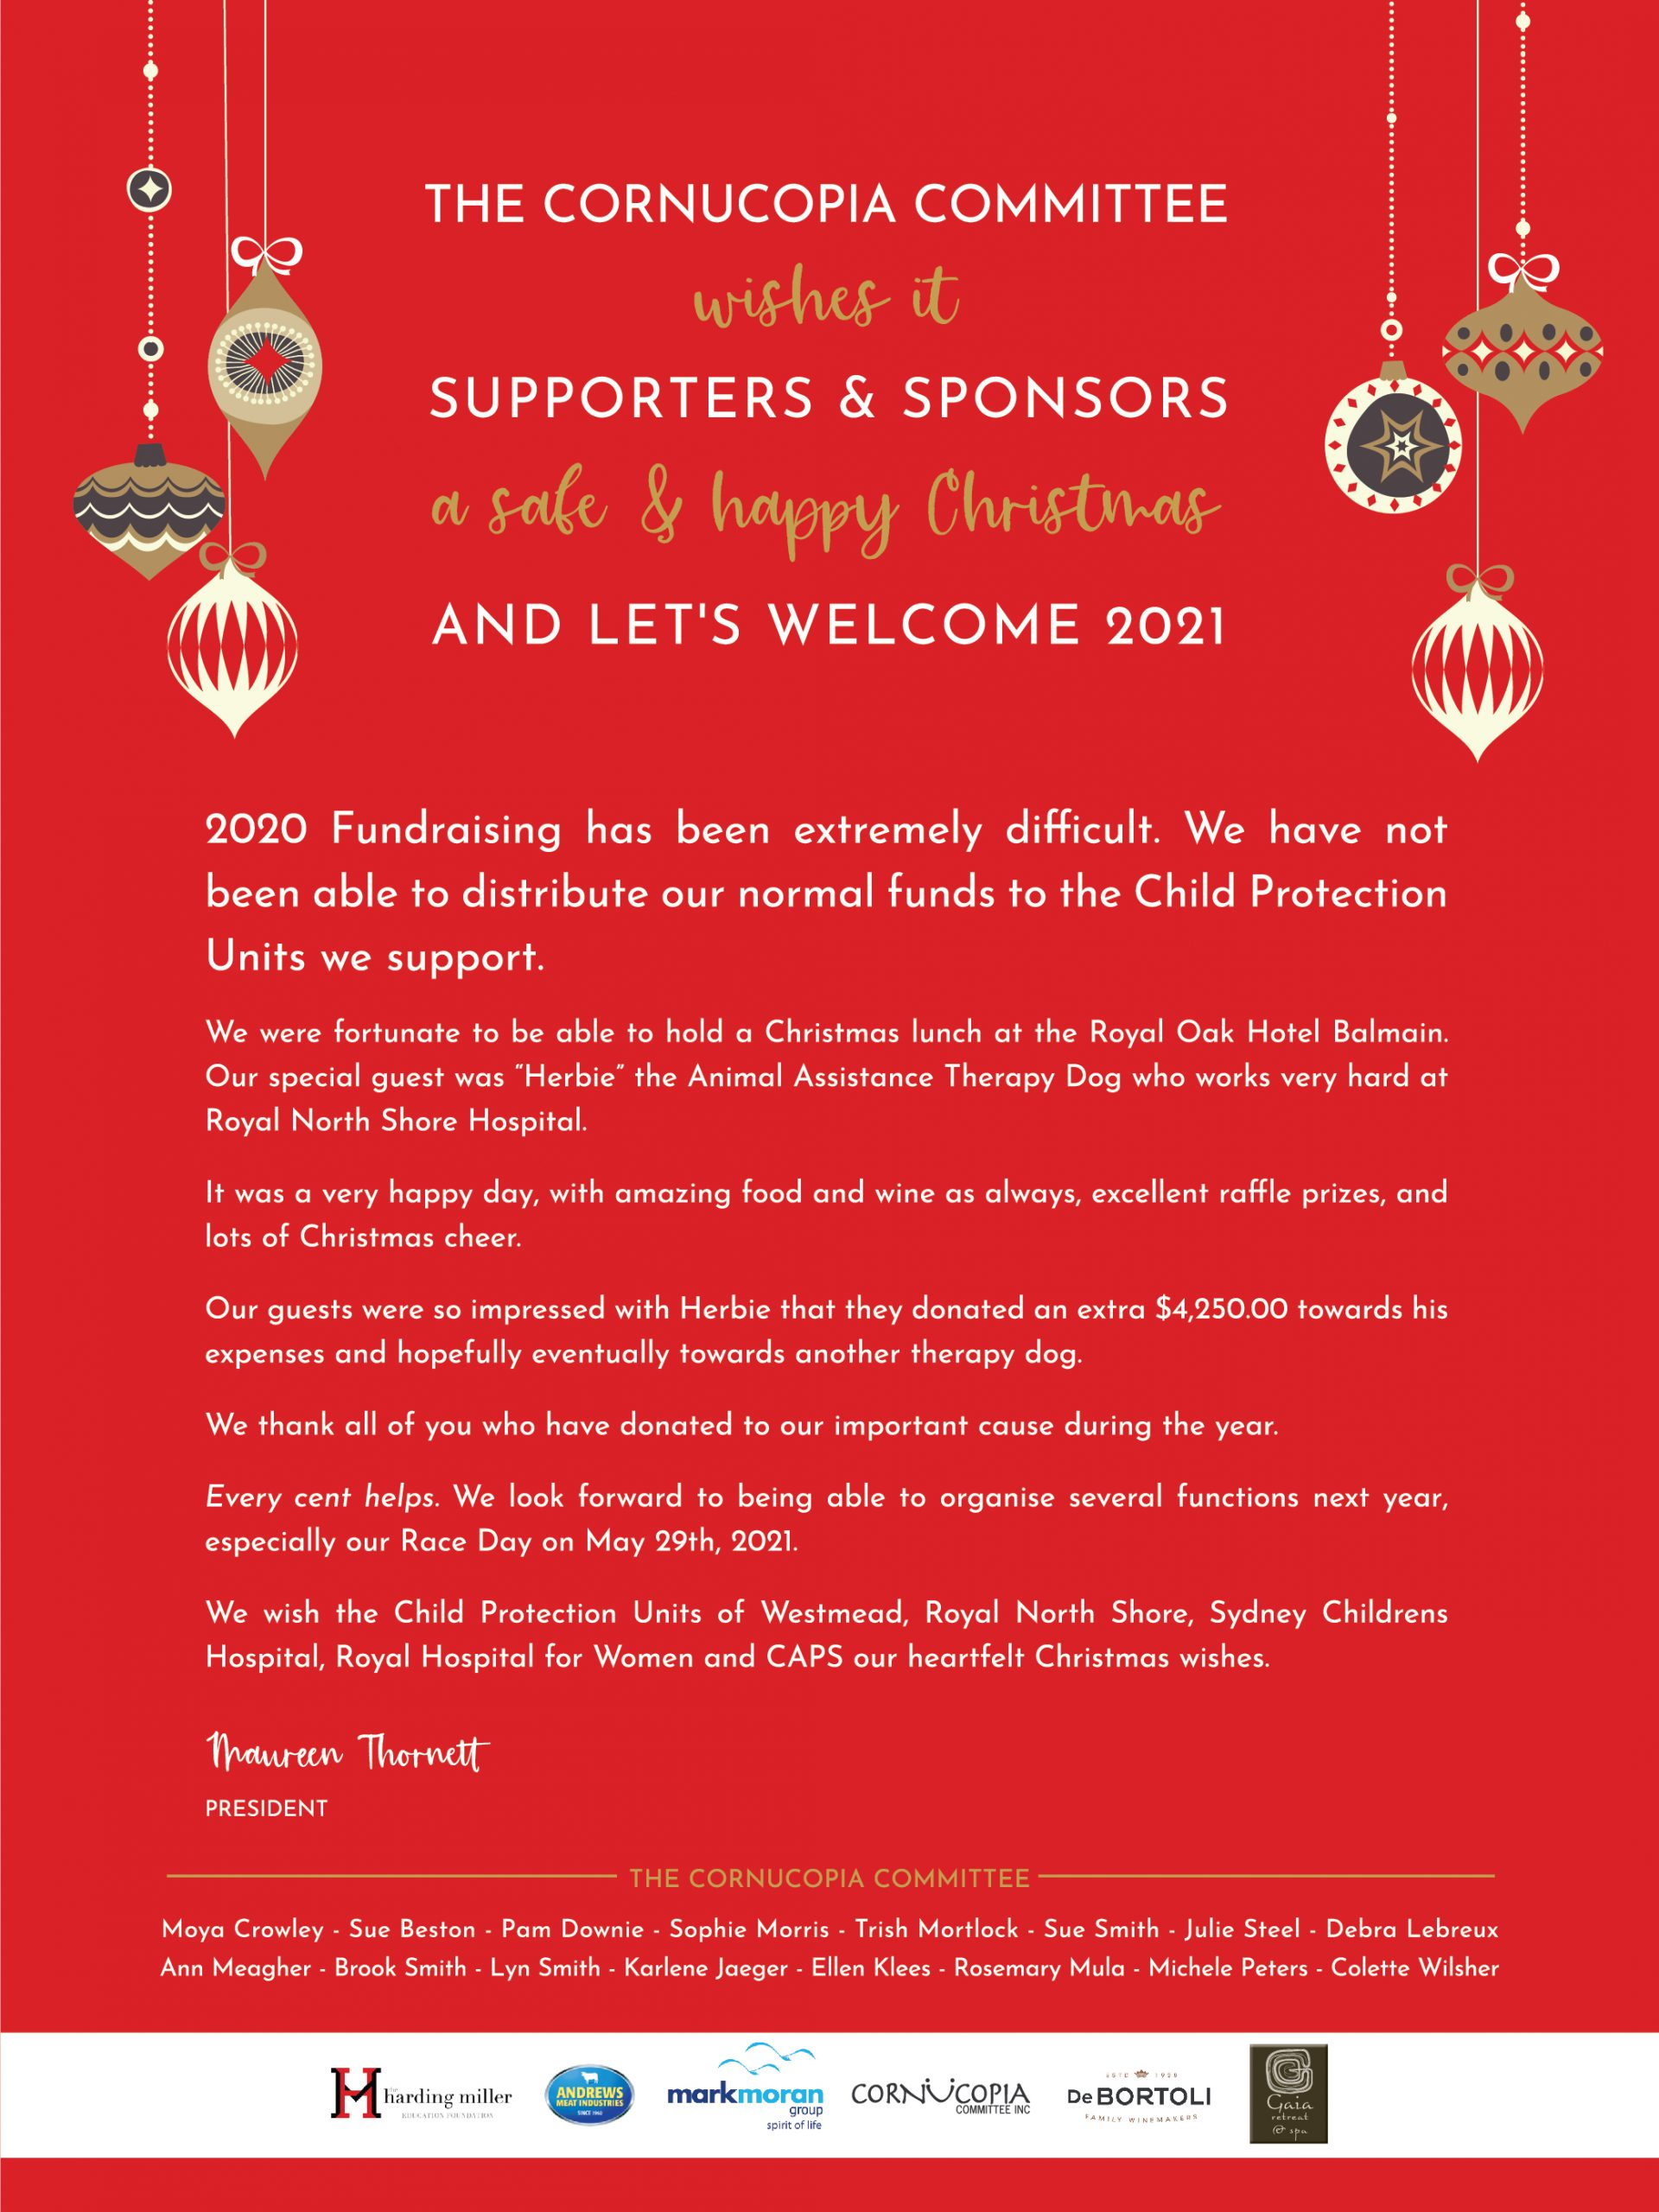 Wishing Supporters and Sponsors a Safe and Happy Christmas